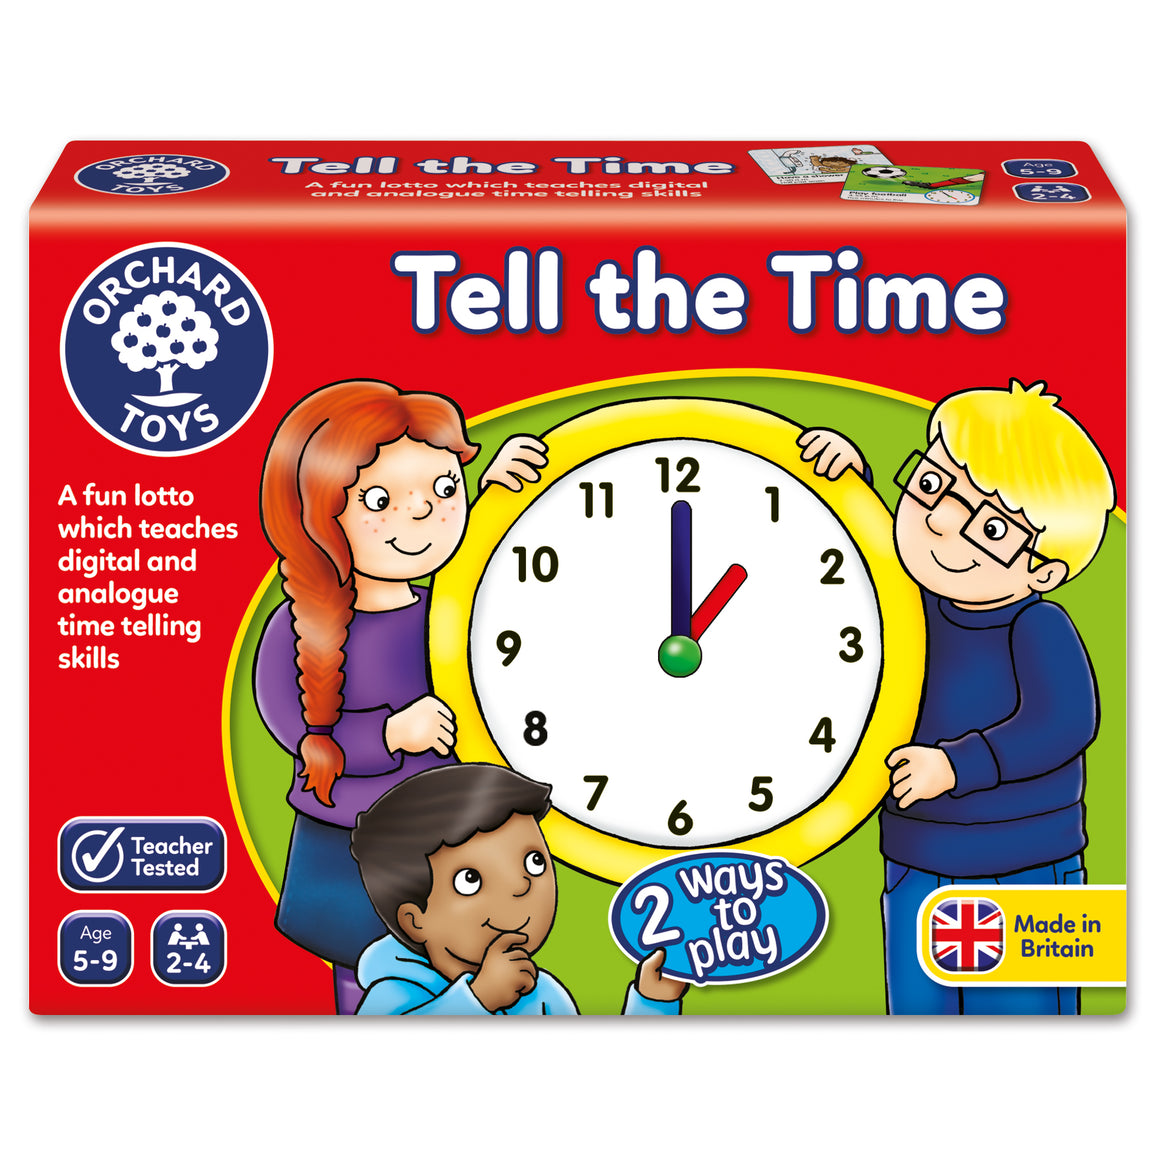 Tell the time - The Tiny Toy Store